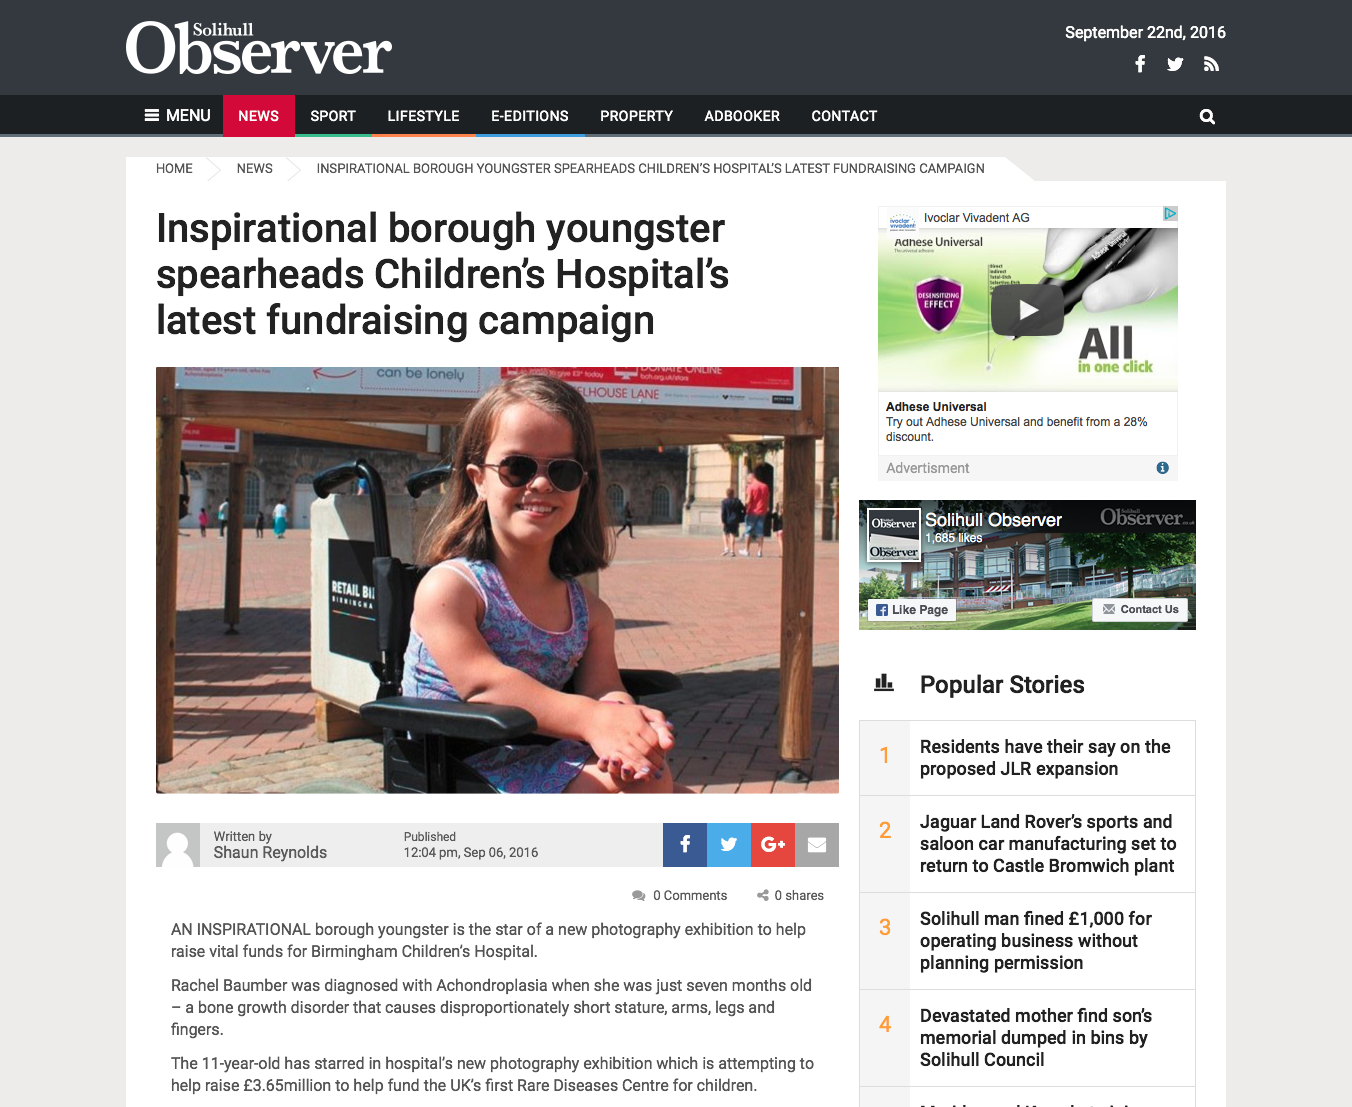 http---solihullobserver.co.uk-news-inspirational-borough-youngster-spearheads-childrens-hospitals-latest-fundraising-campaign-(20160922).png